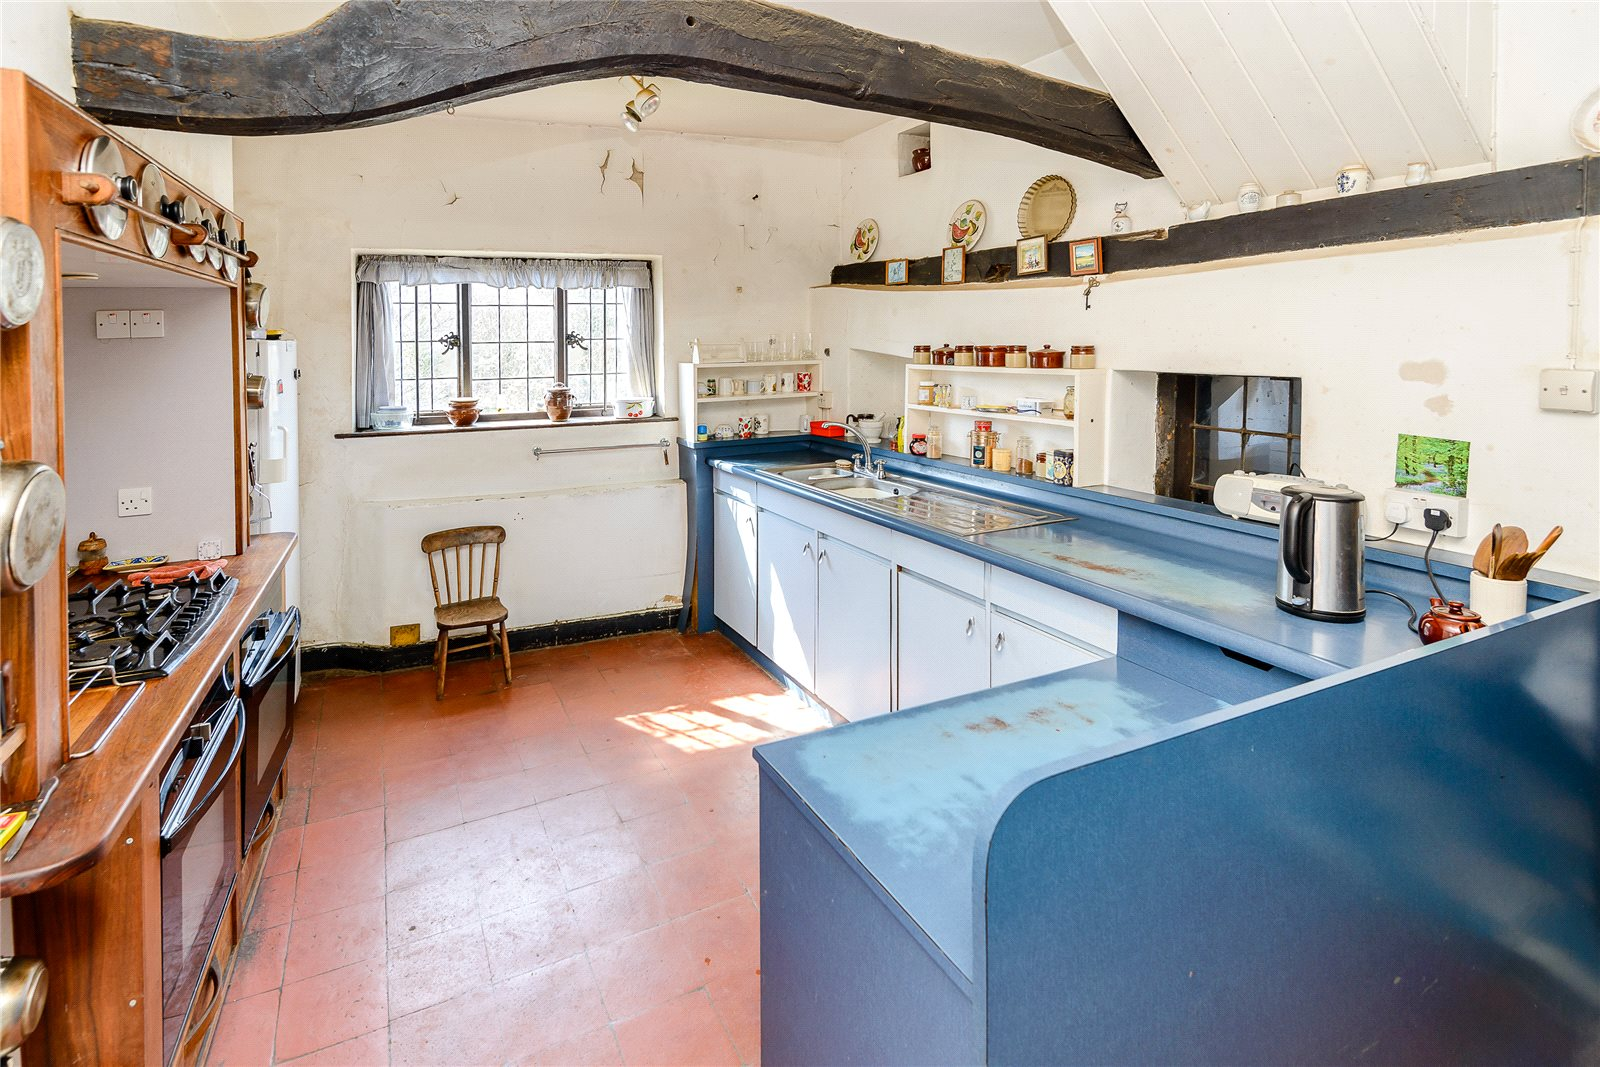 Additional photo for property listing at Old Hatch Farm, Dorking Road, Abinger Hammer, Surrey, RH5 Abinger Hammer, England